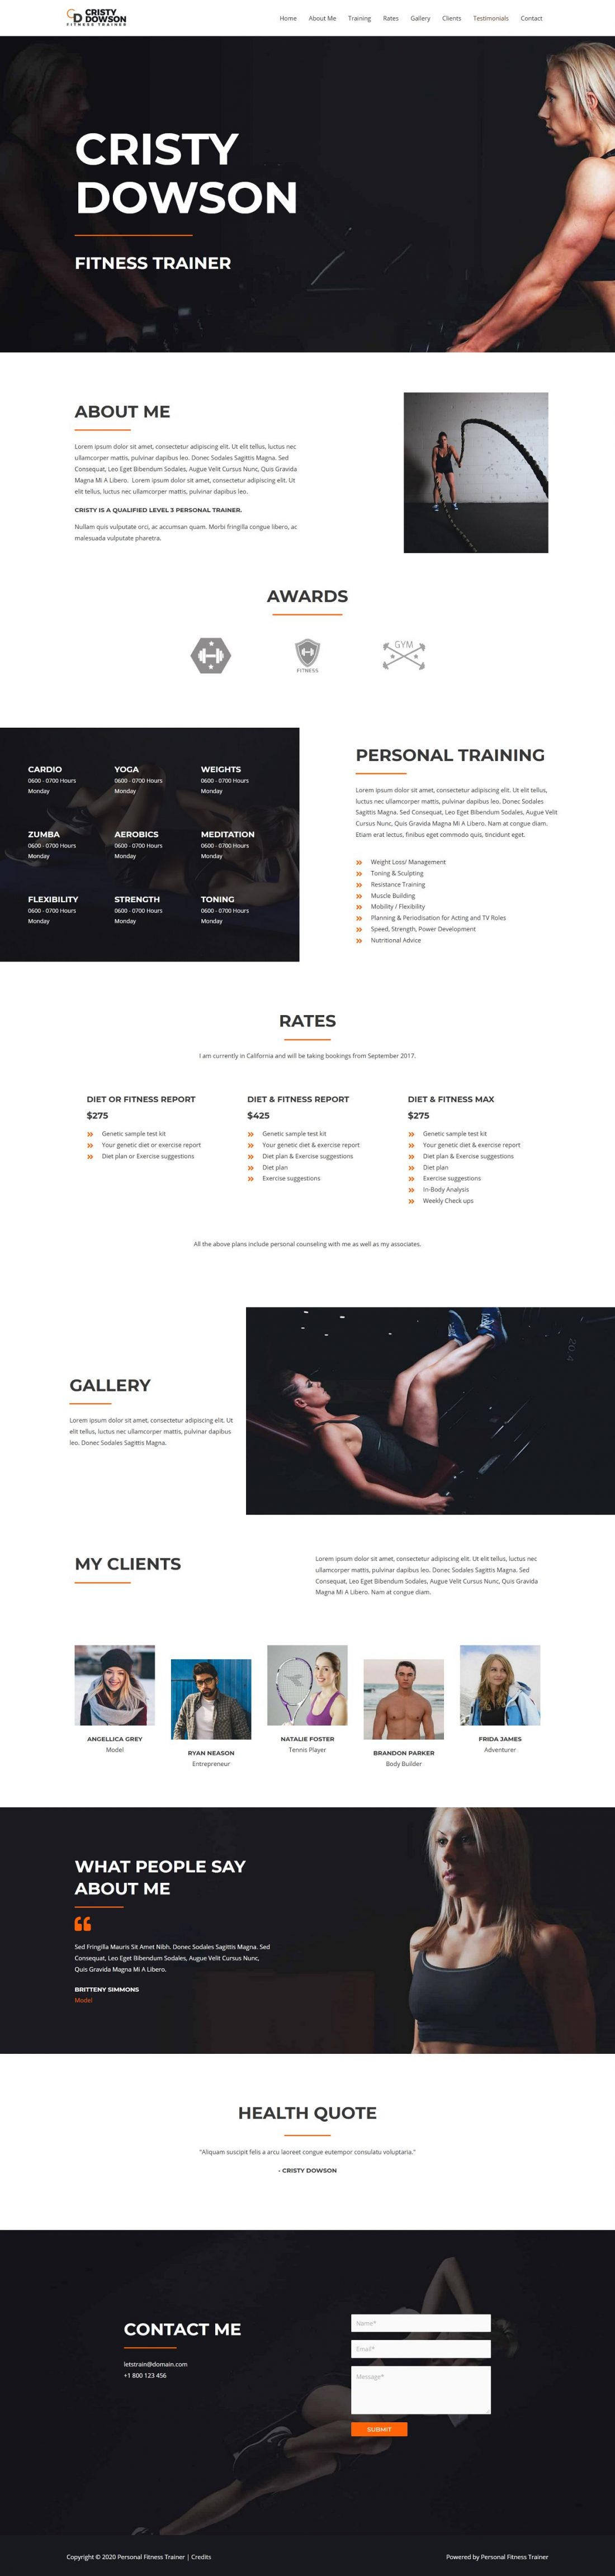 Fagowi.com Website Design Templates For Personal Trainer Female - Home Page Image